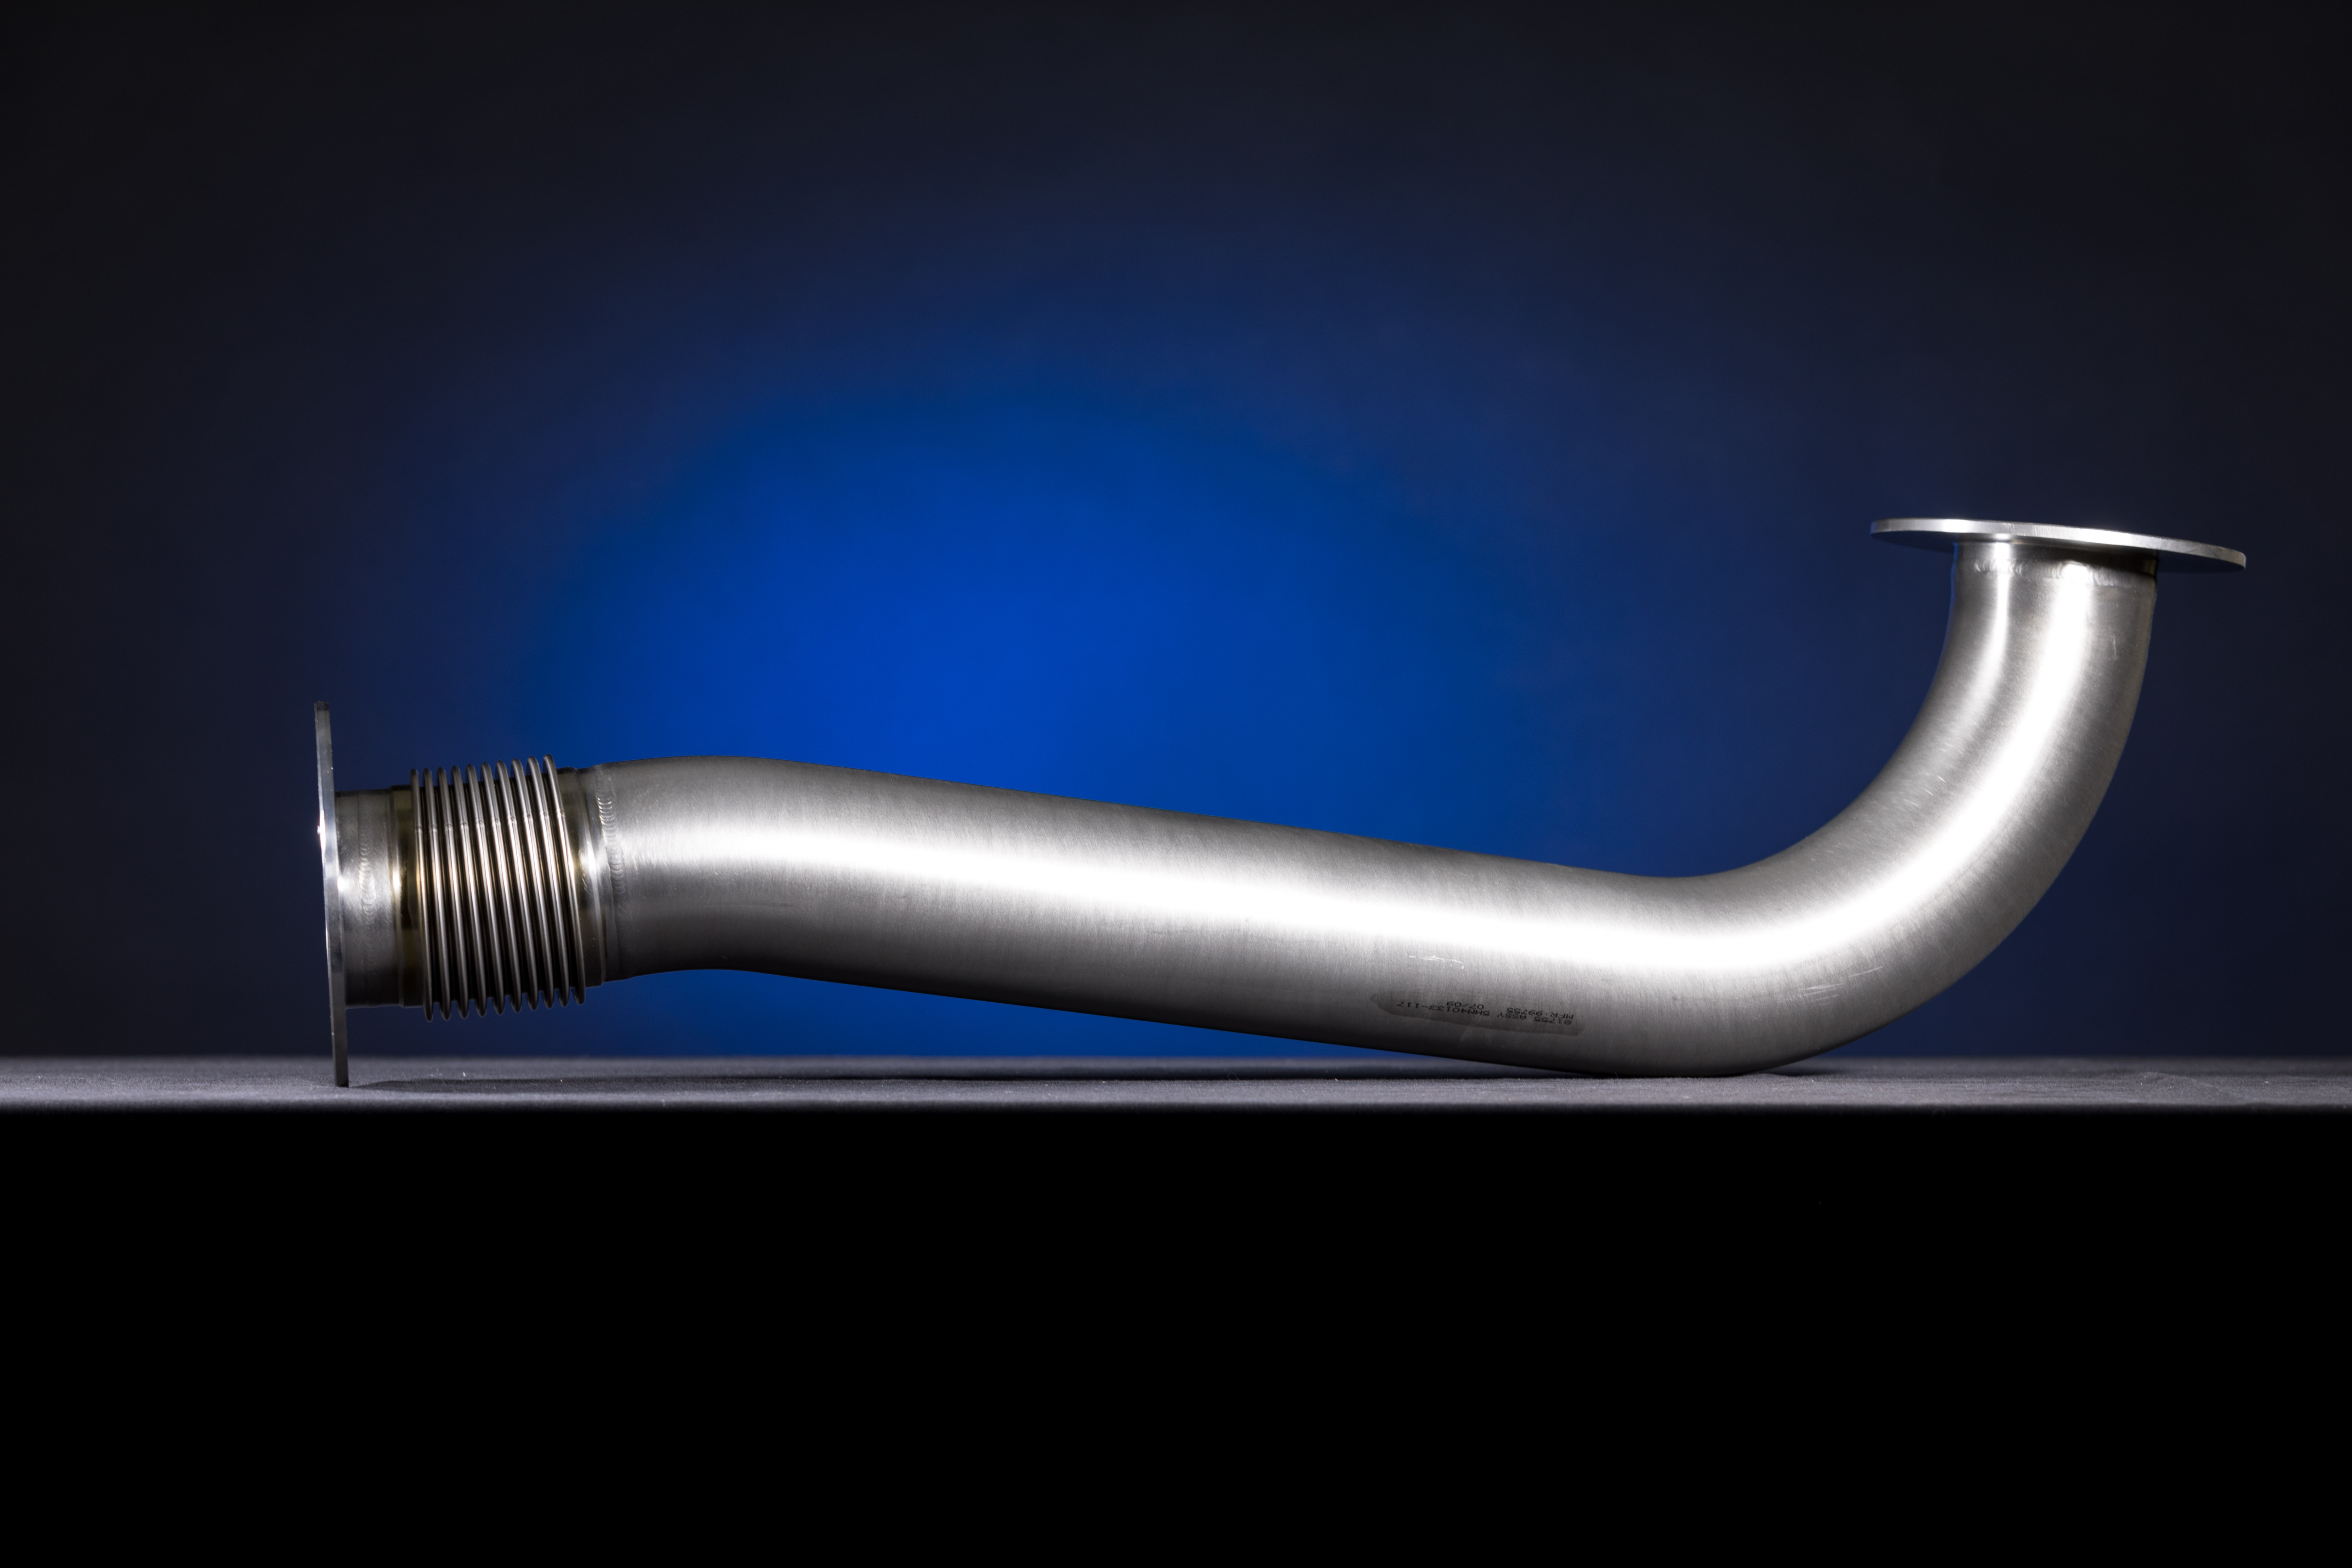 Ducts And Tubes